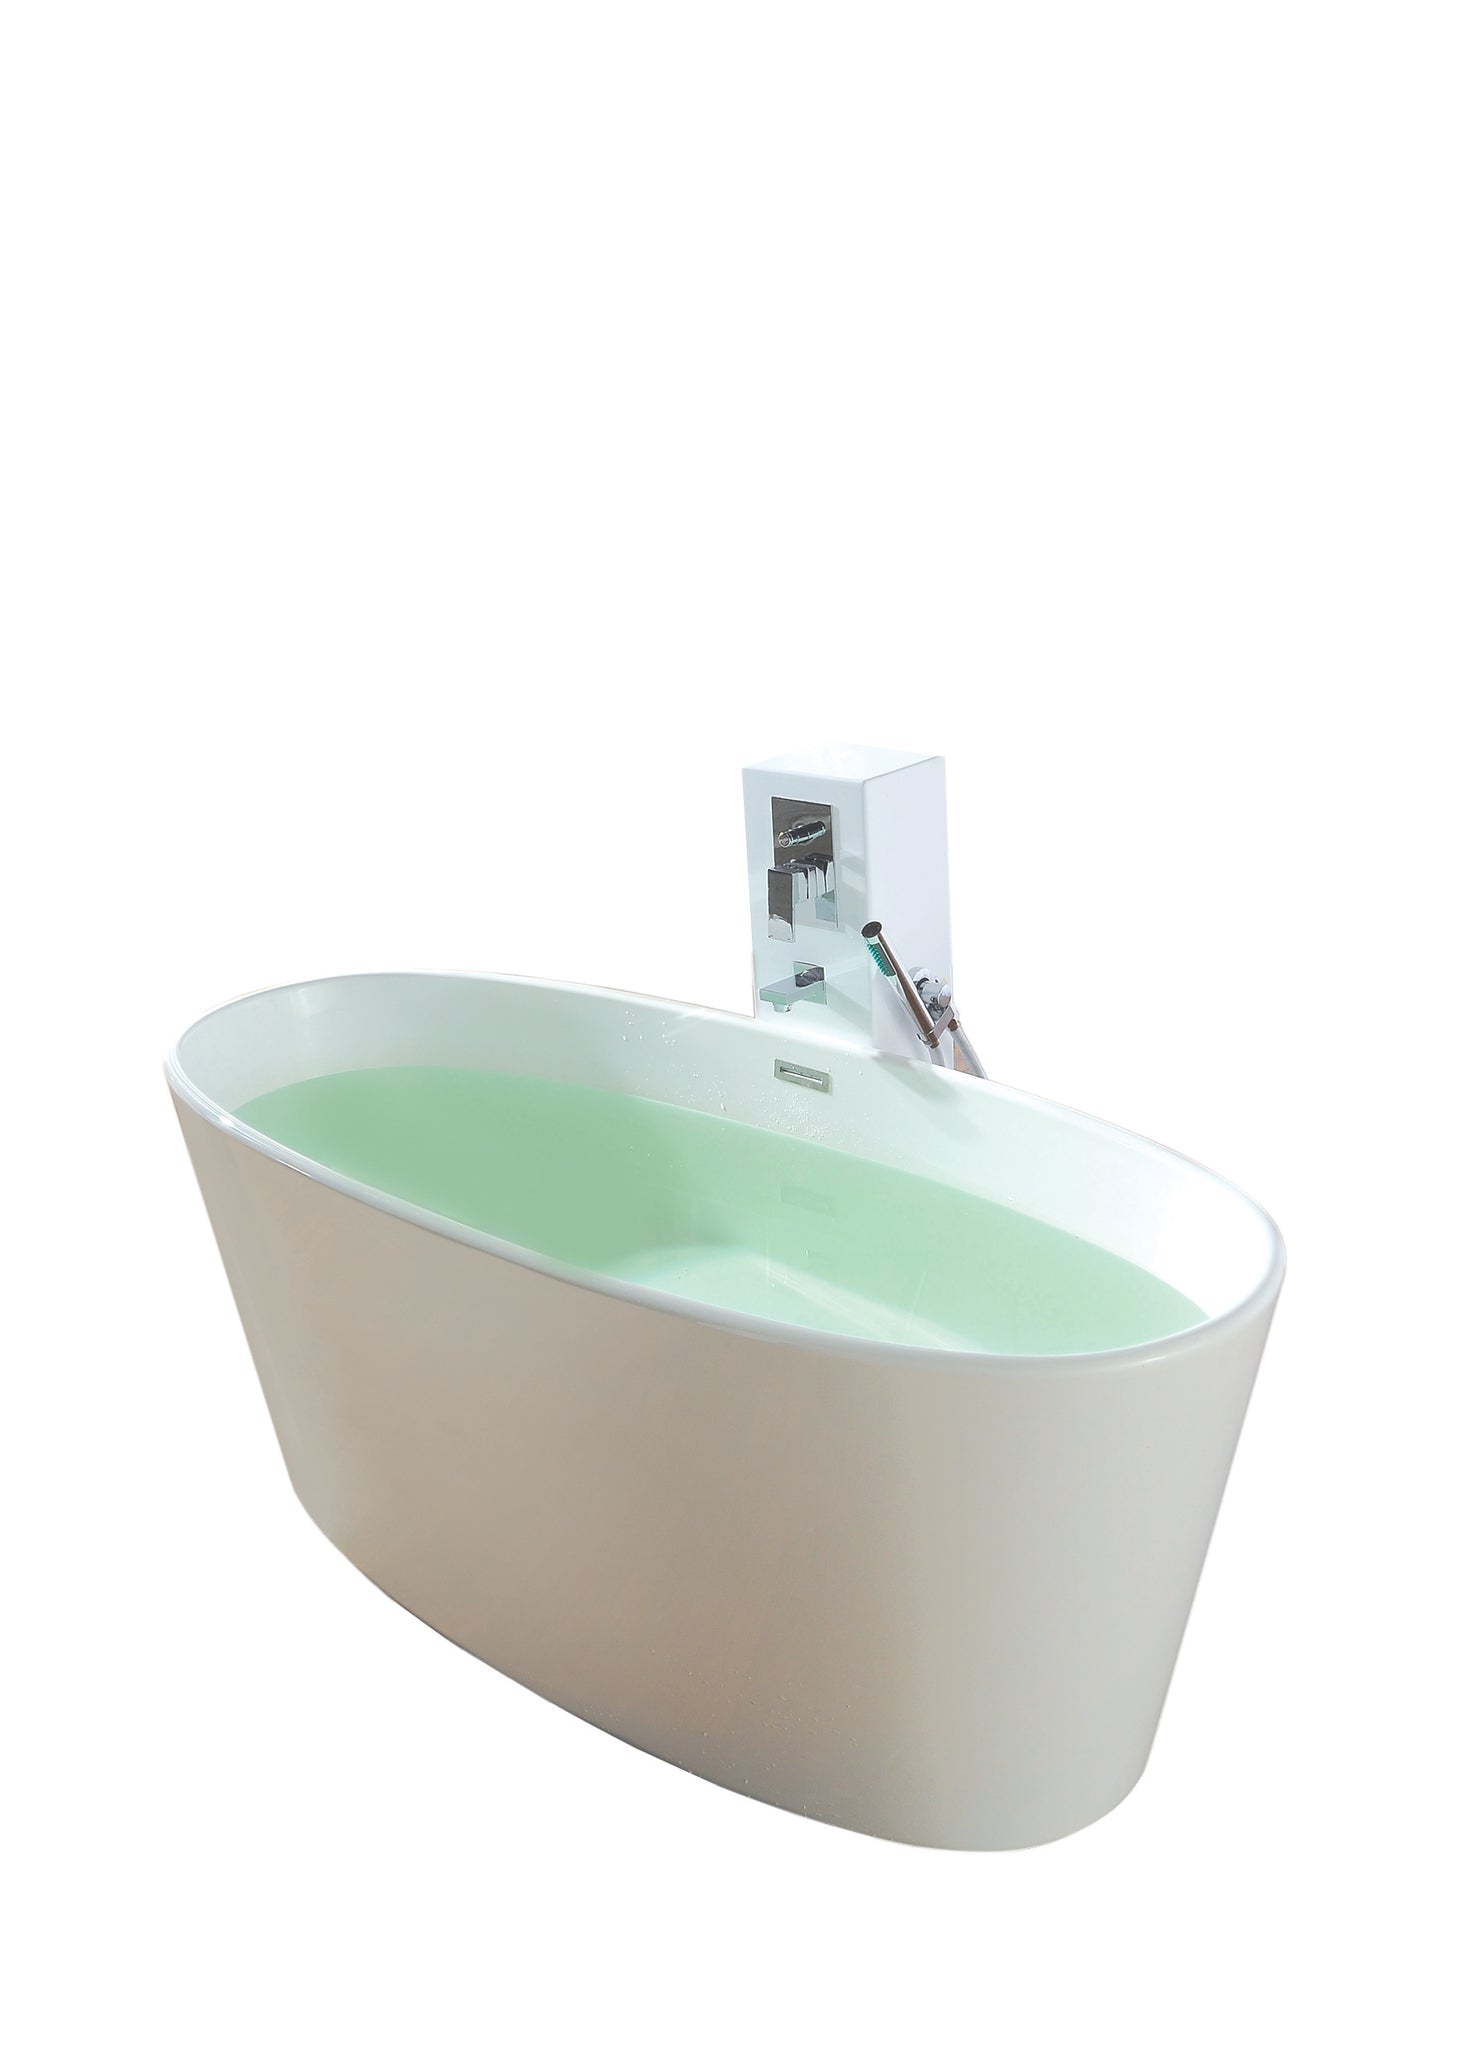 Controlbrand True Solid Surface Soaking Tub - Vinyasa Matte [BW4056MW]